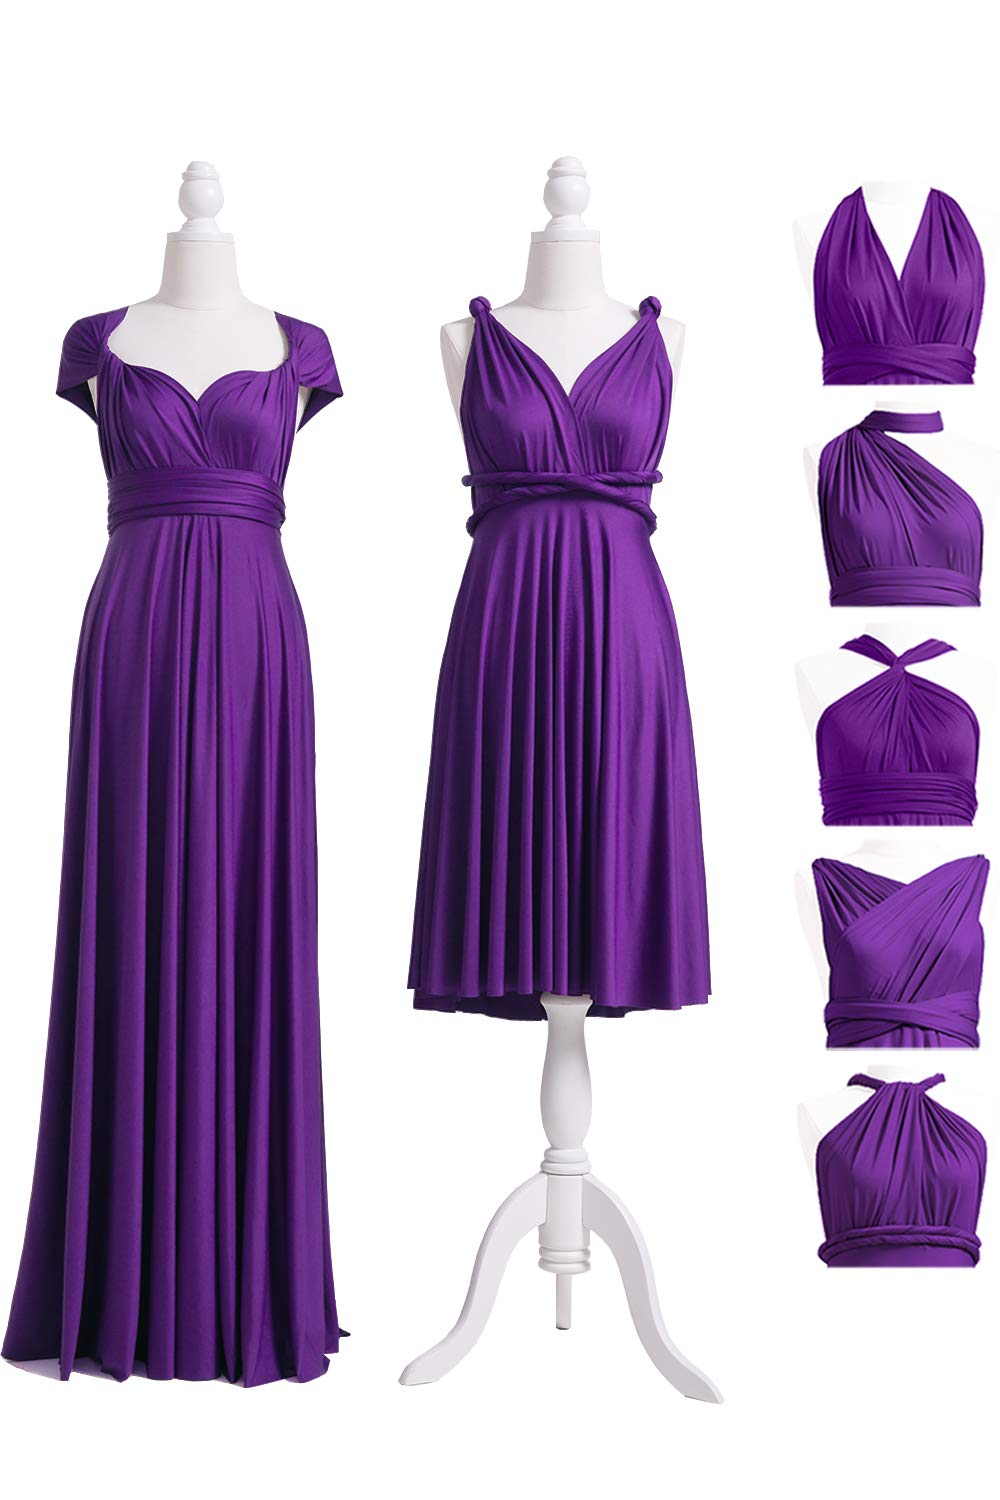 Purple Infinity Dress with Bandeau, Convertible Dress, Bridesmaid ...